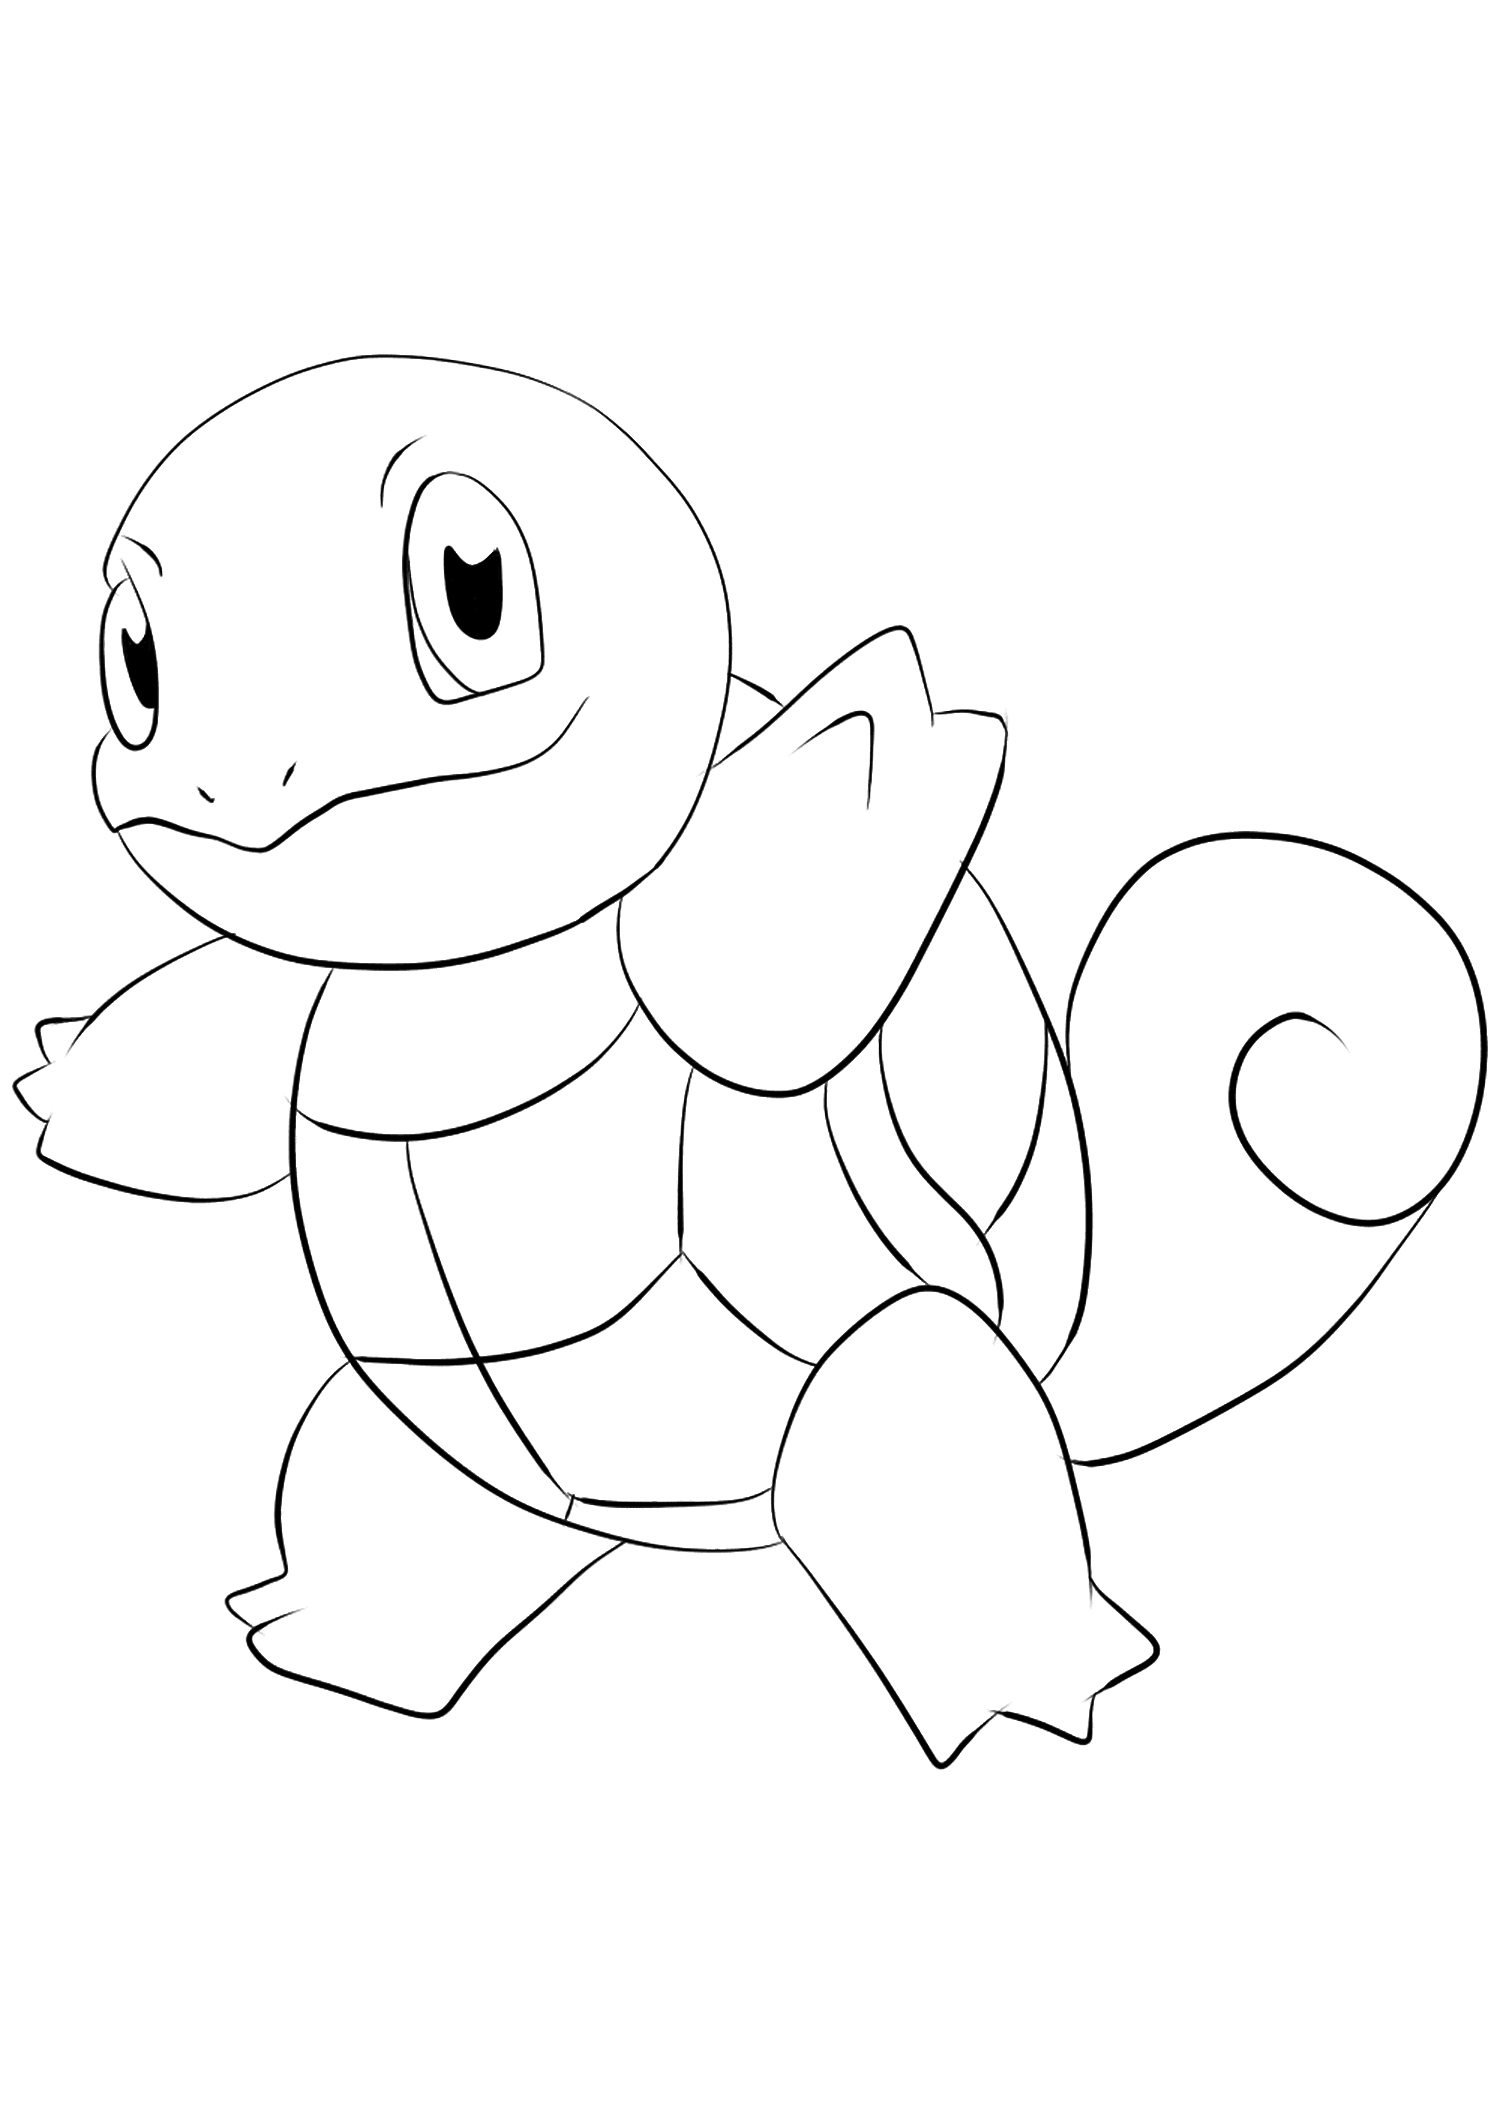 Squirtle Pokemon Coloring Pages : squirtle, pokemon, coloring, pages, Squirtle, No.07, Pokemon, Generation, Coloring, Pages